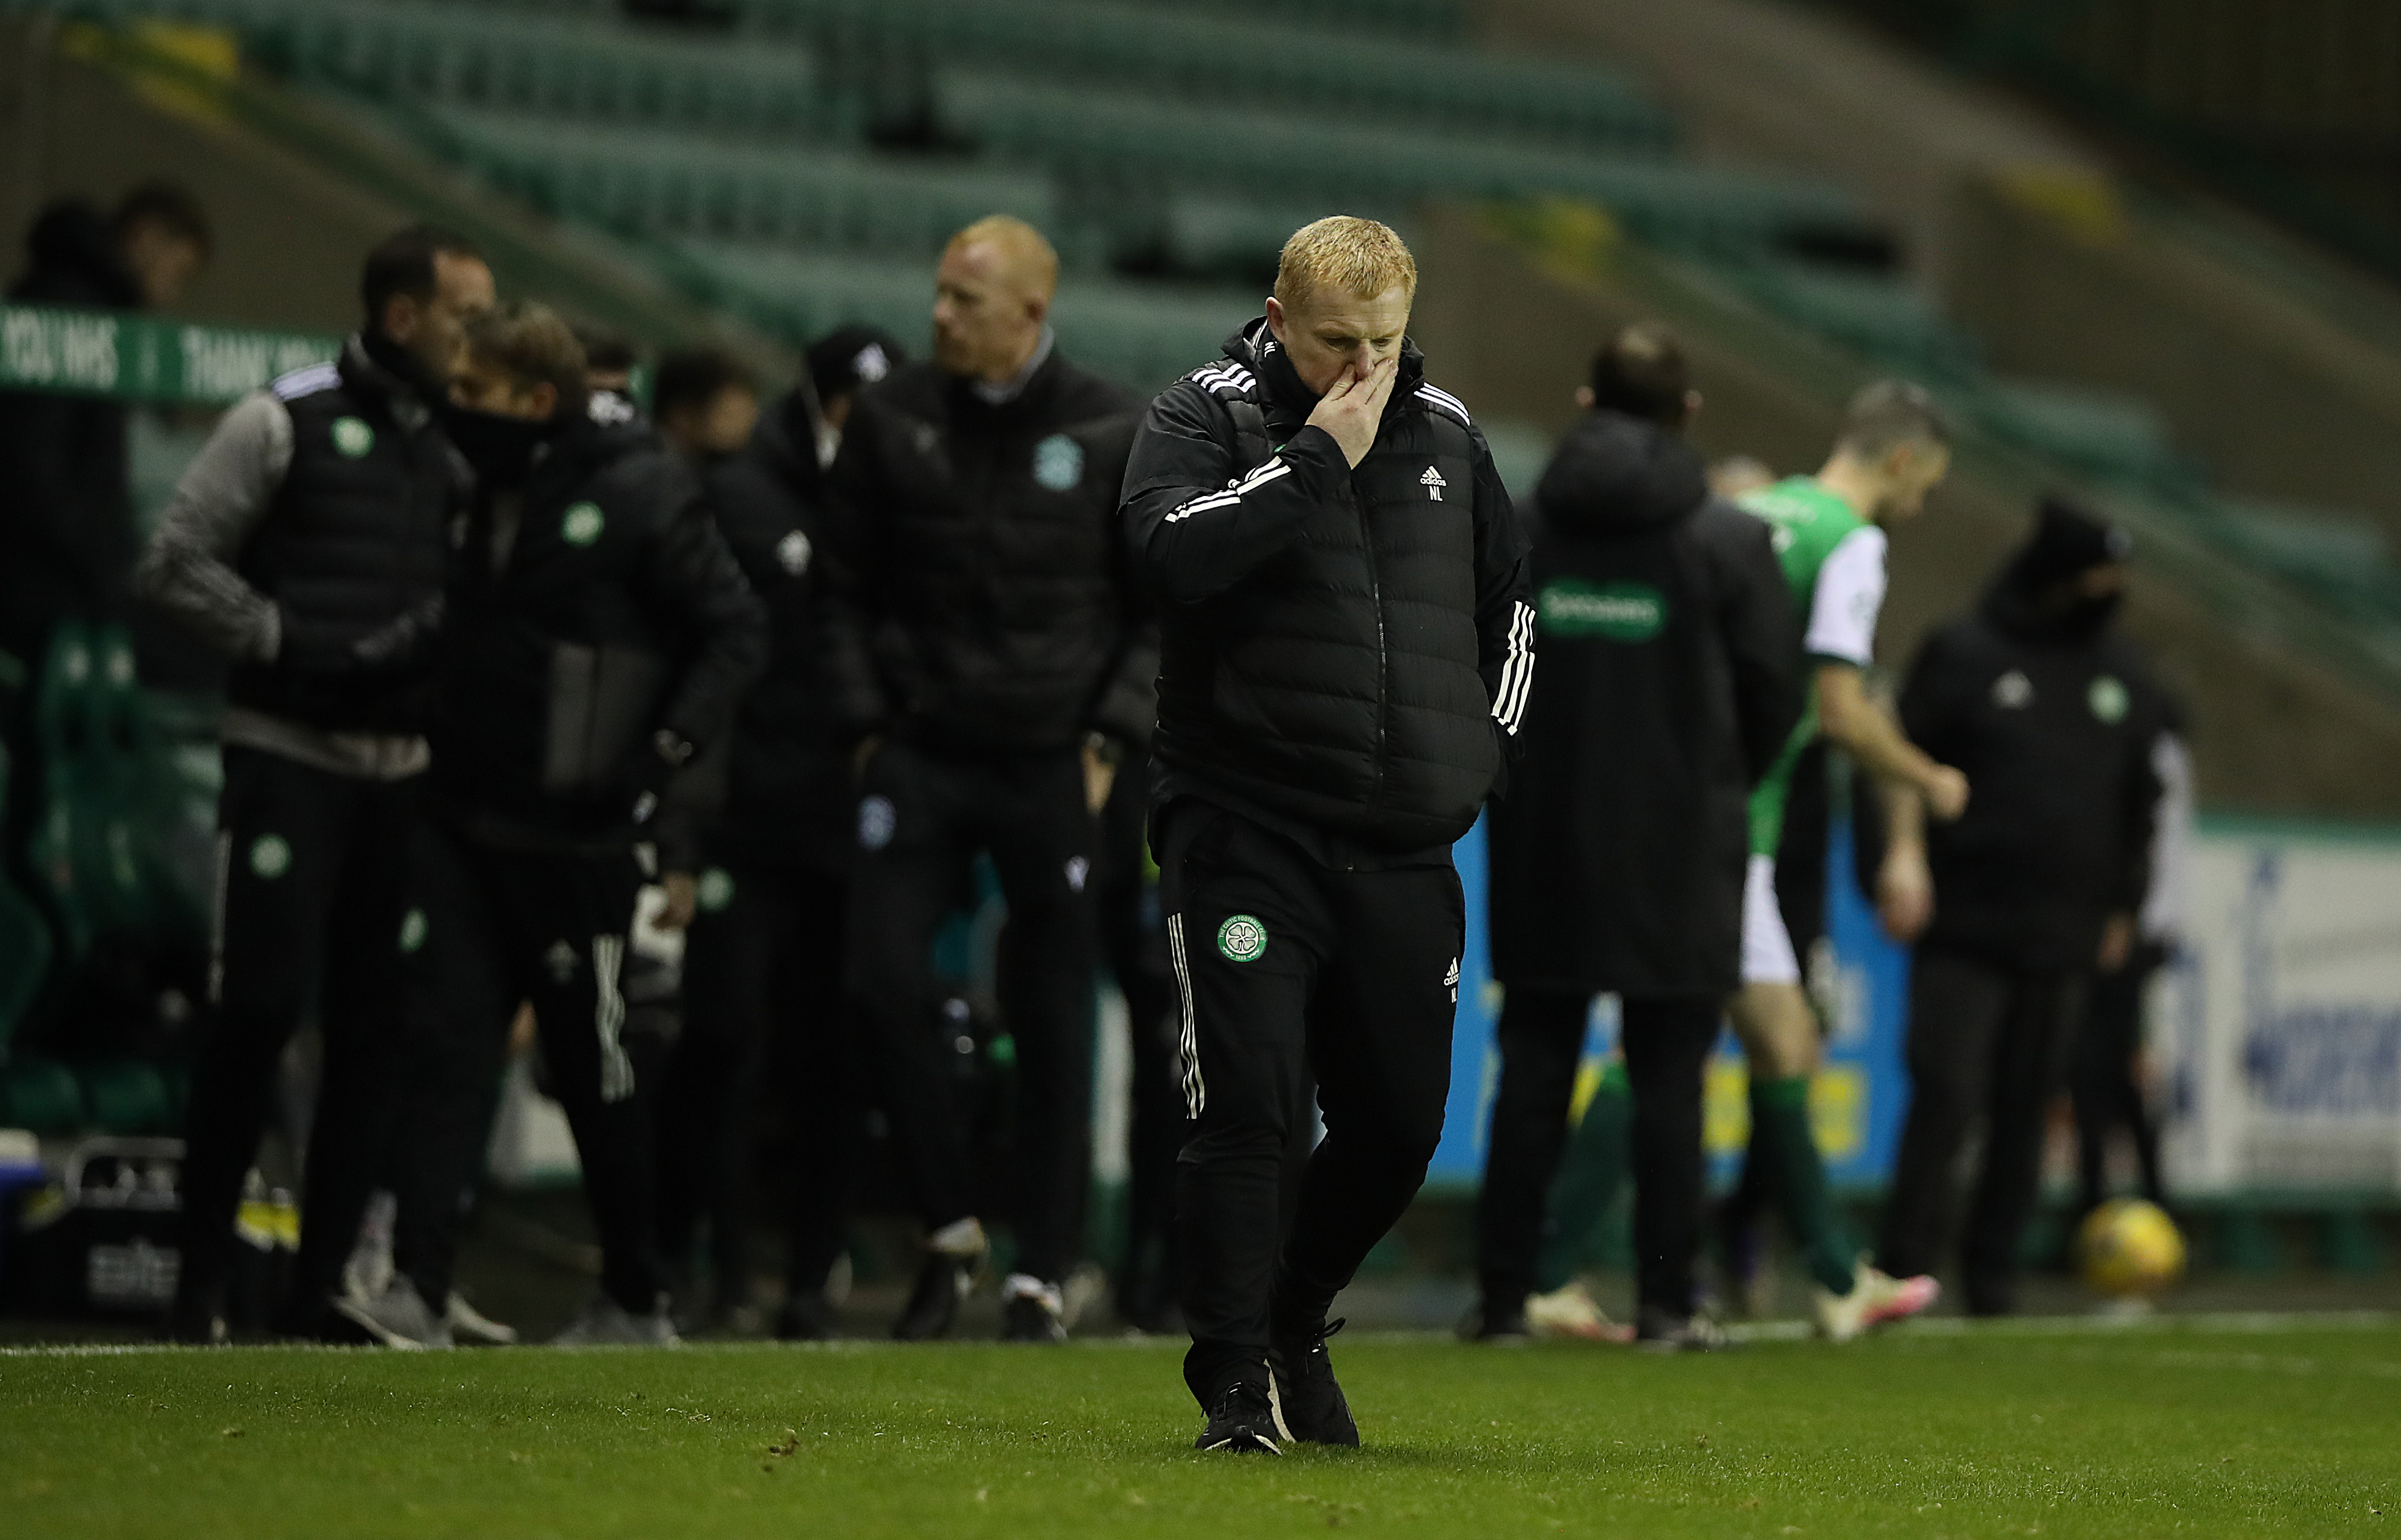 Celtic boss Neil Lennon after his side's 2-2 draw against Hibernian at Easter Road